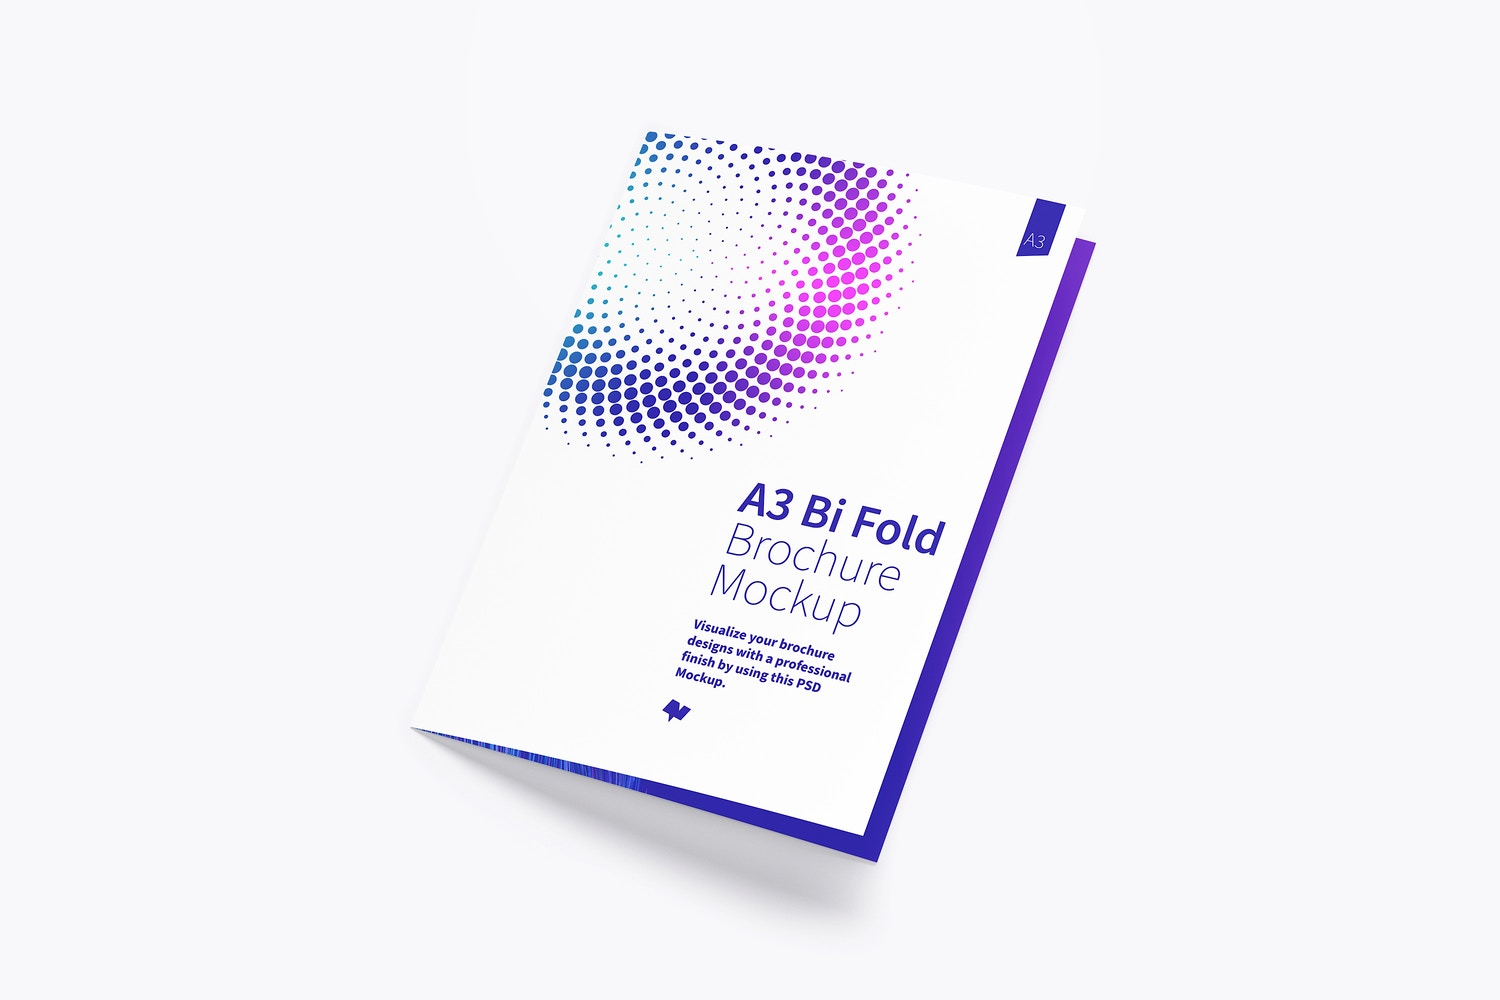 A3 Bi Fold Brochure Mockup 01 by Original Mockups on Original Mockups